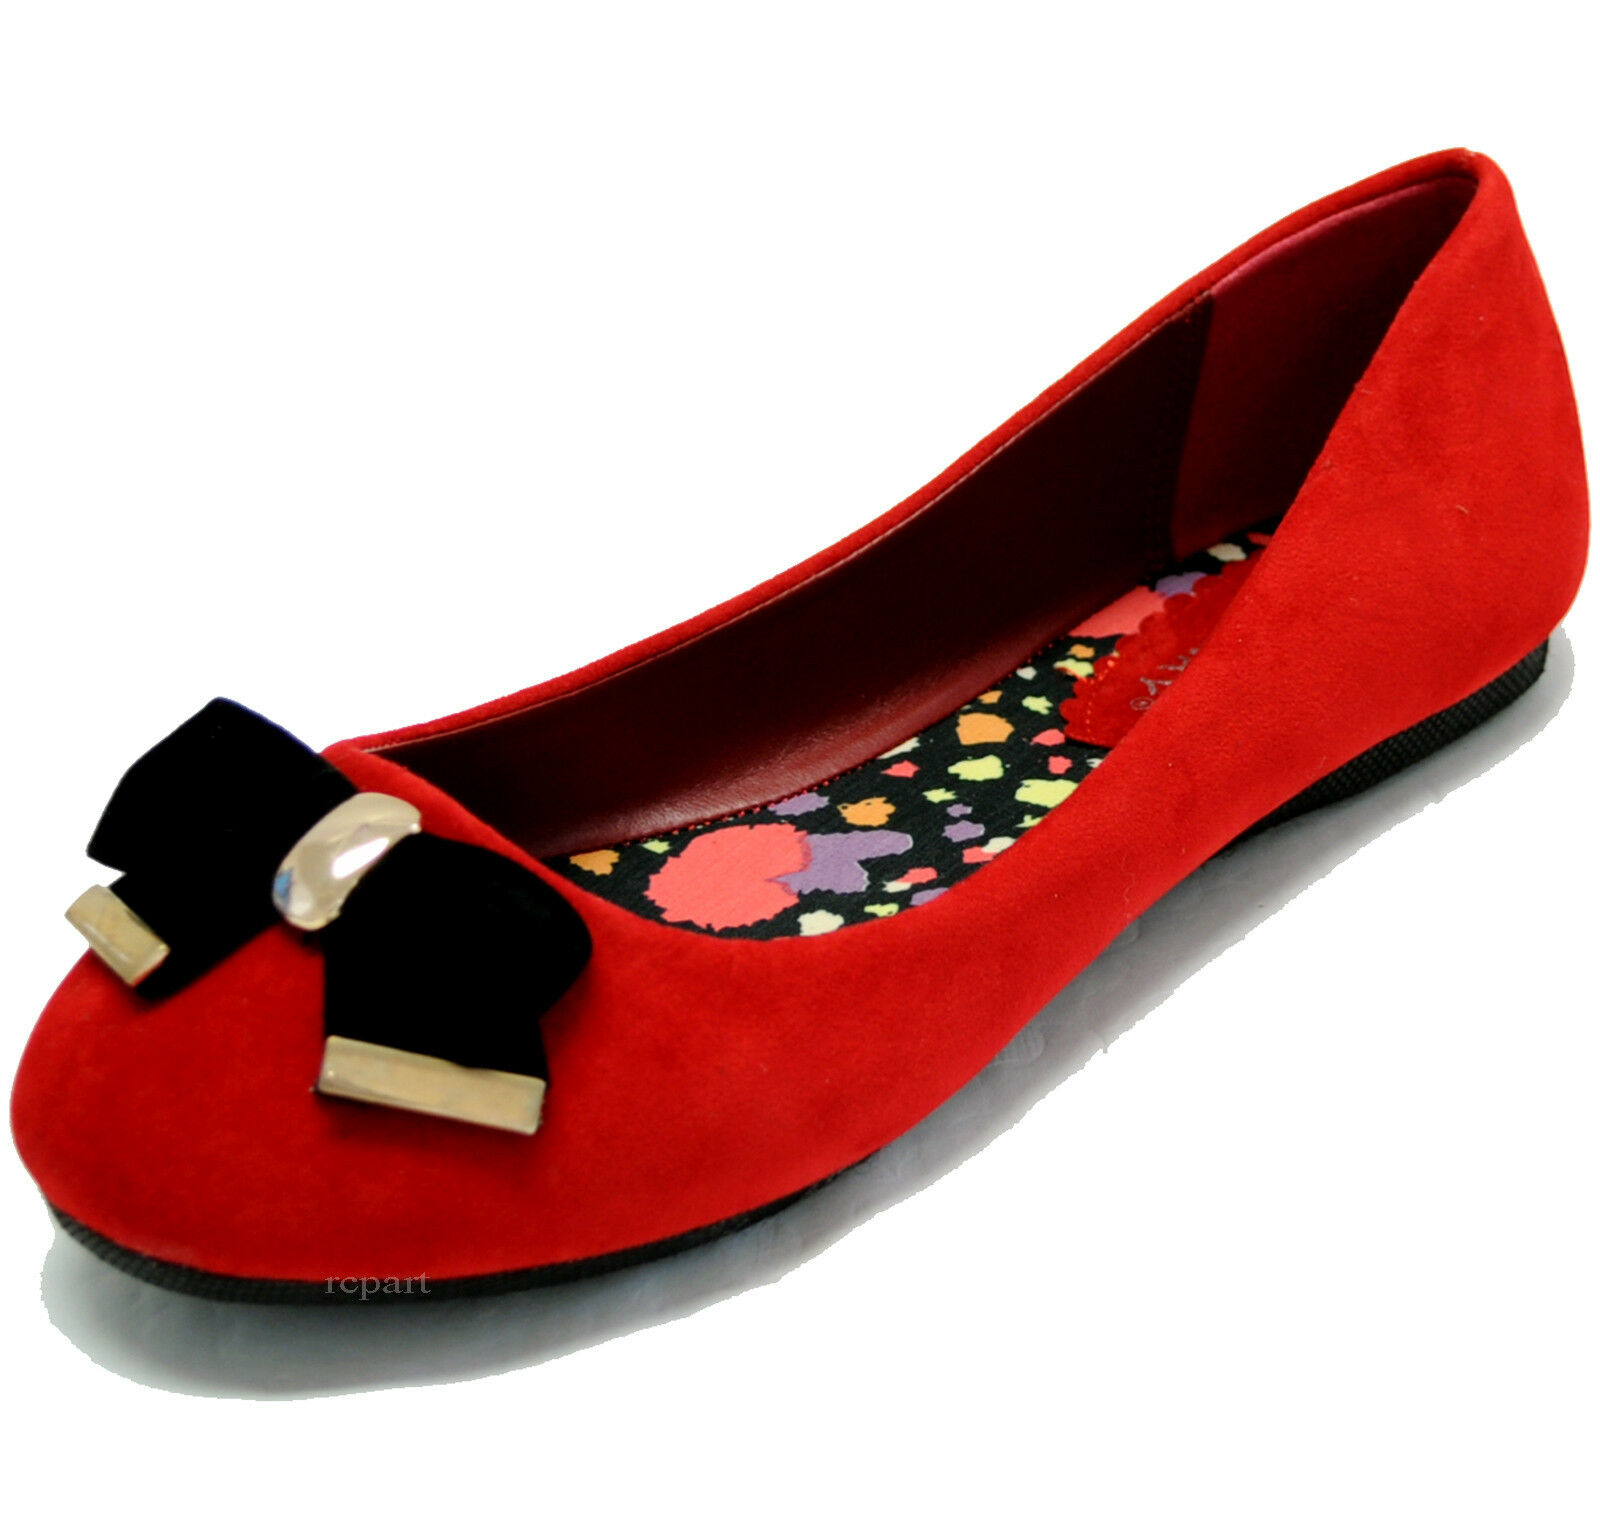 New women/'s shoes red ballet flat ballerina suede like black bow casual